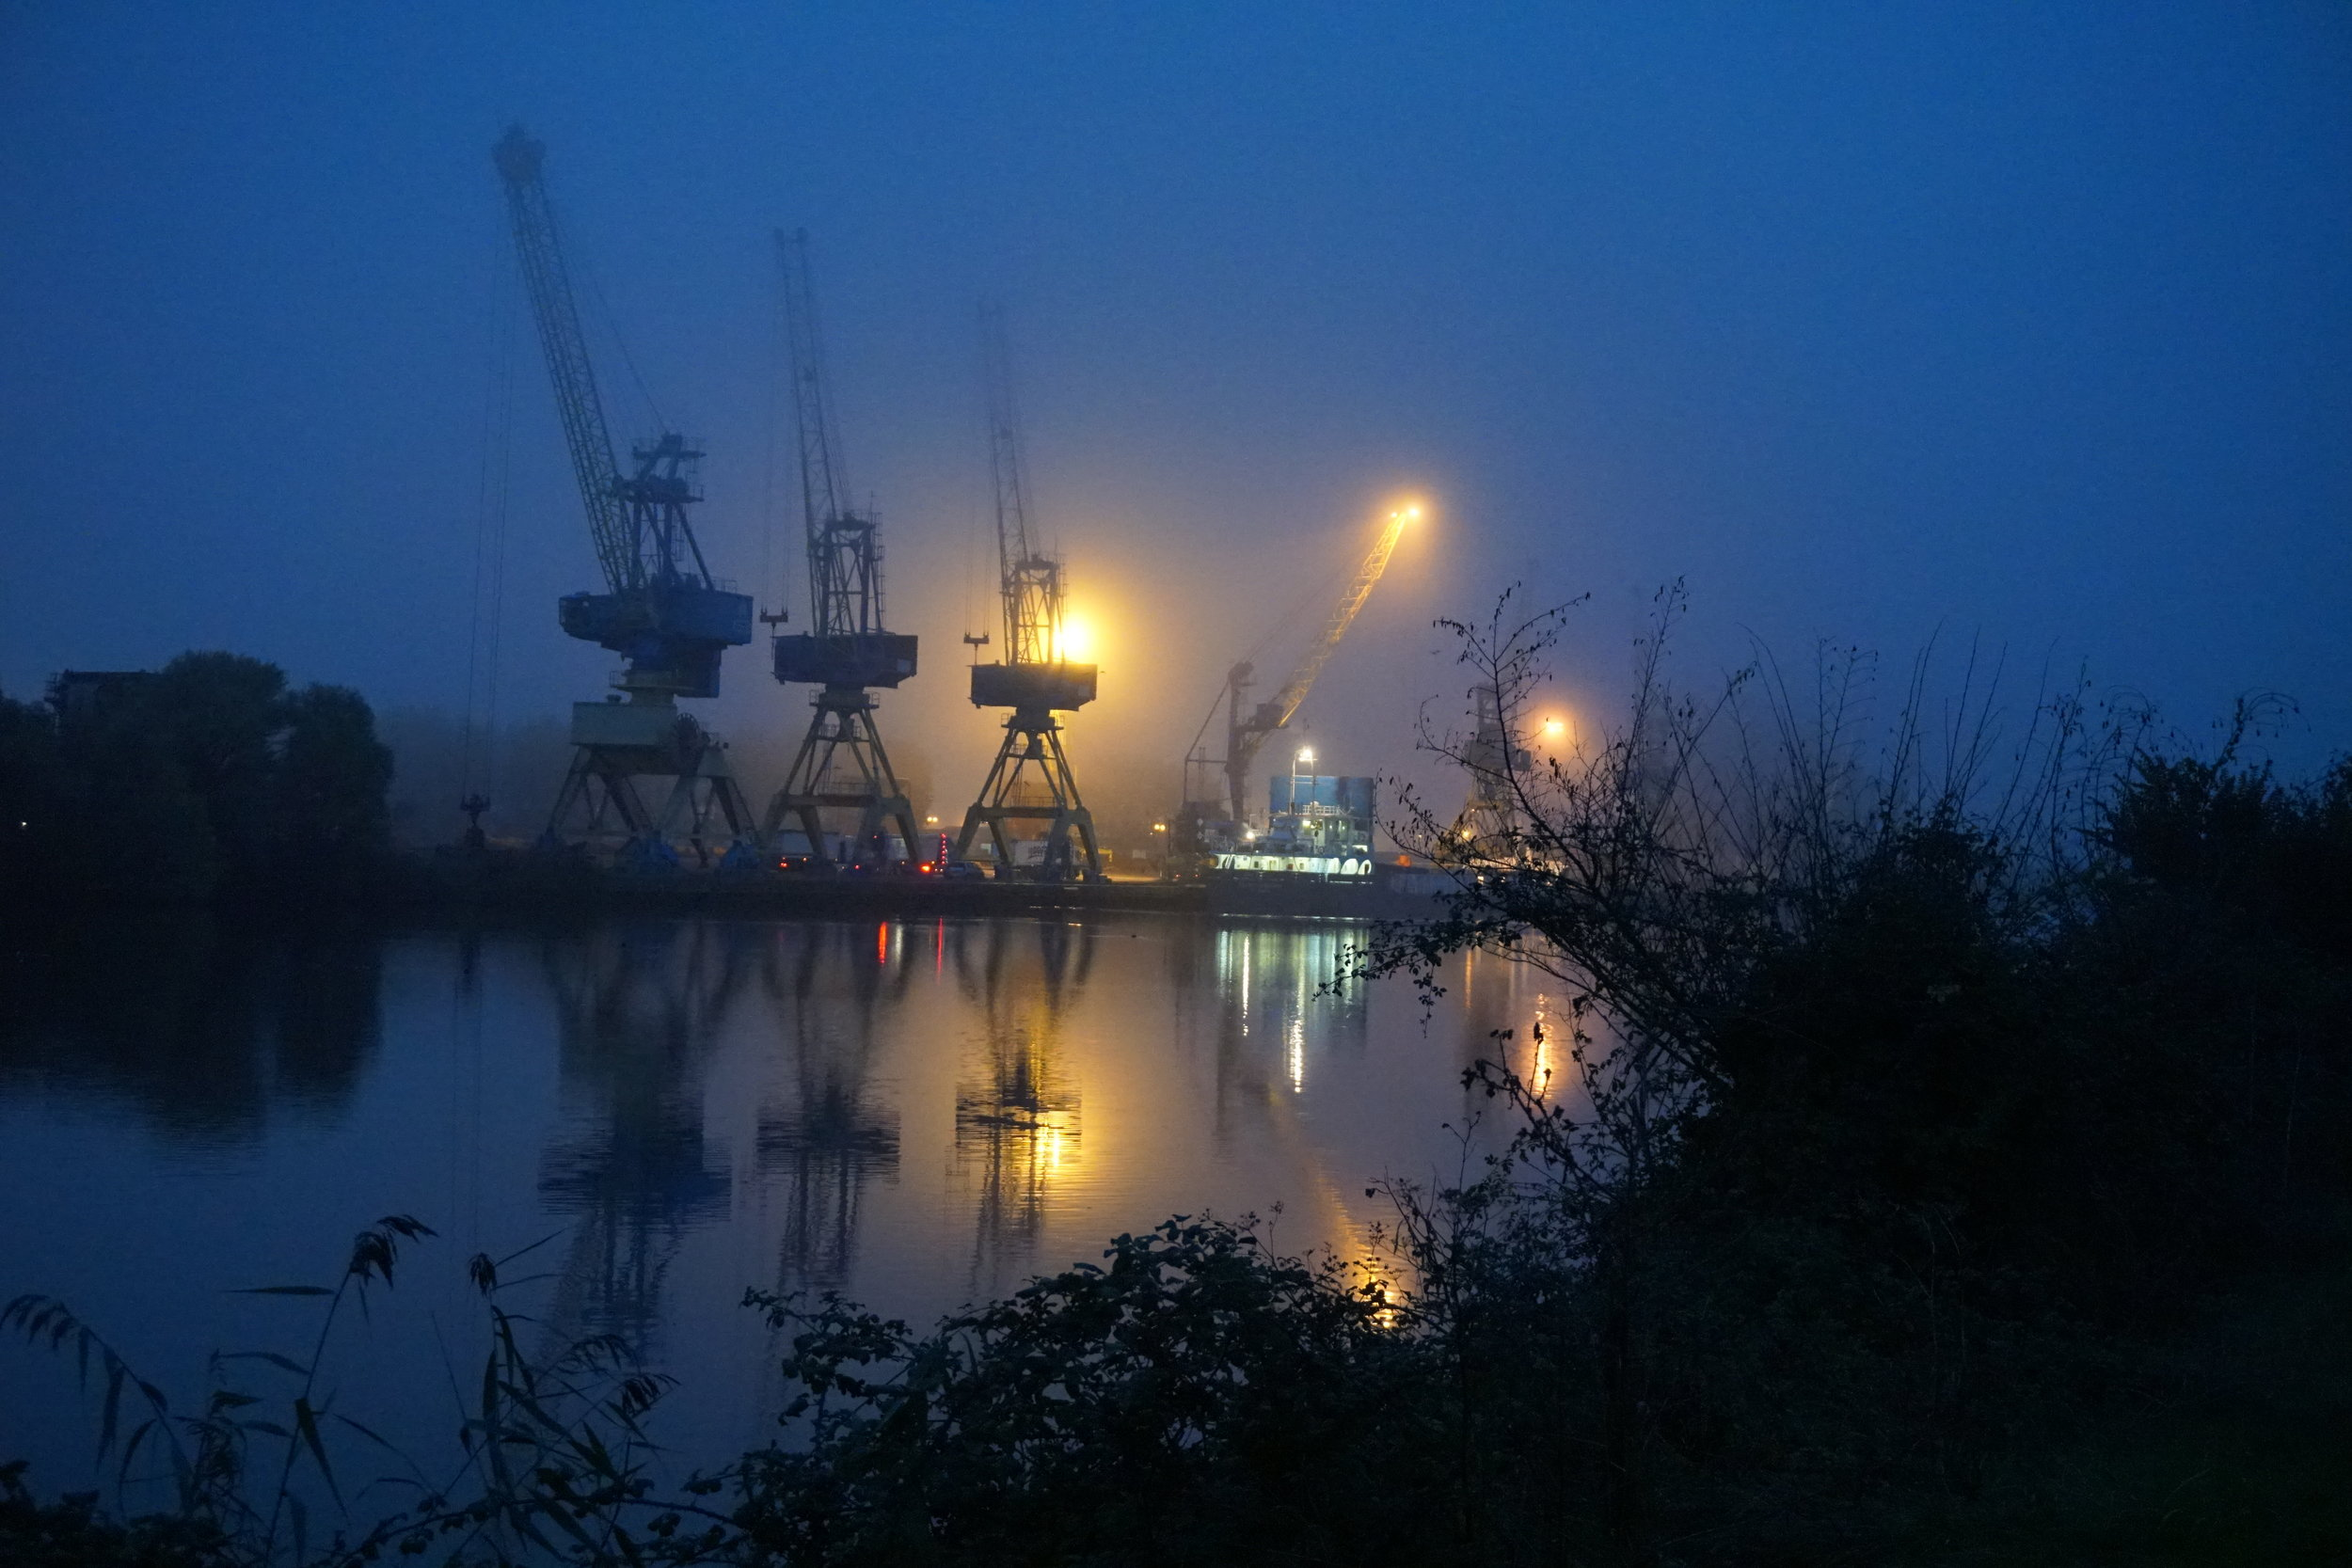 The early morning mist on the canal leading to Caen